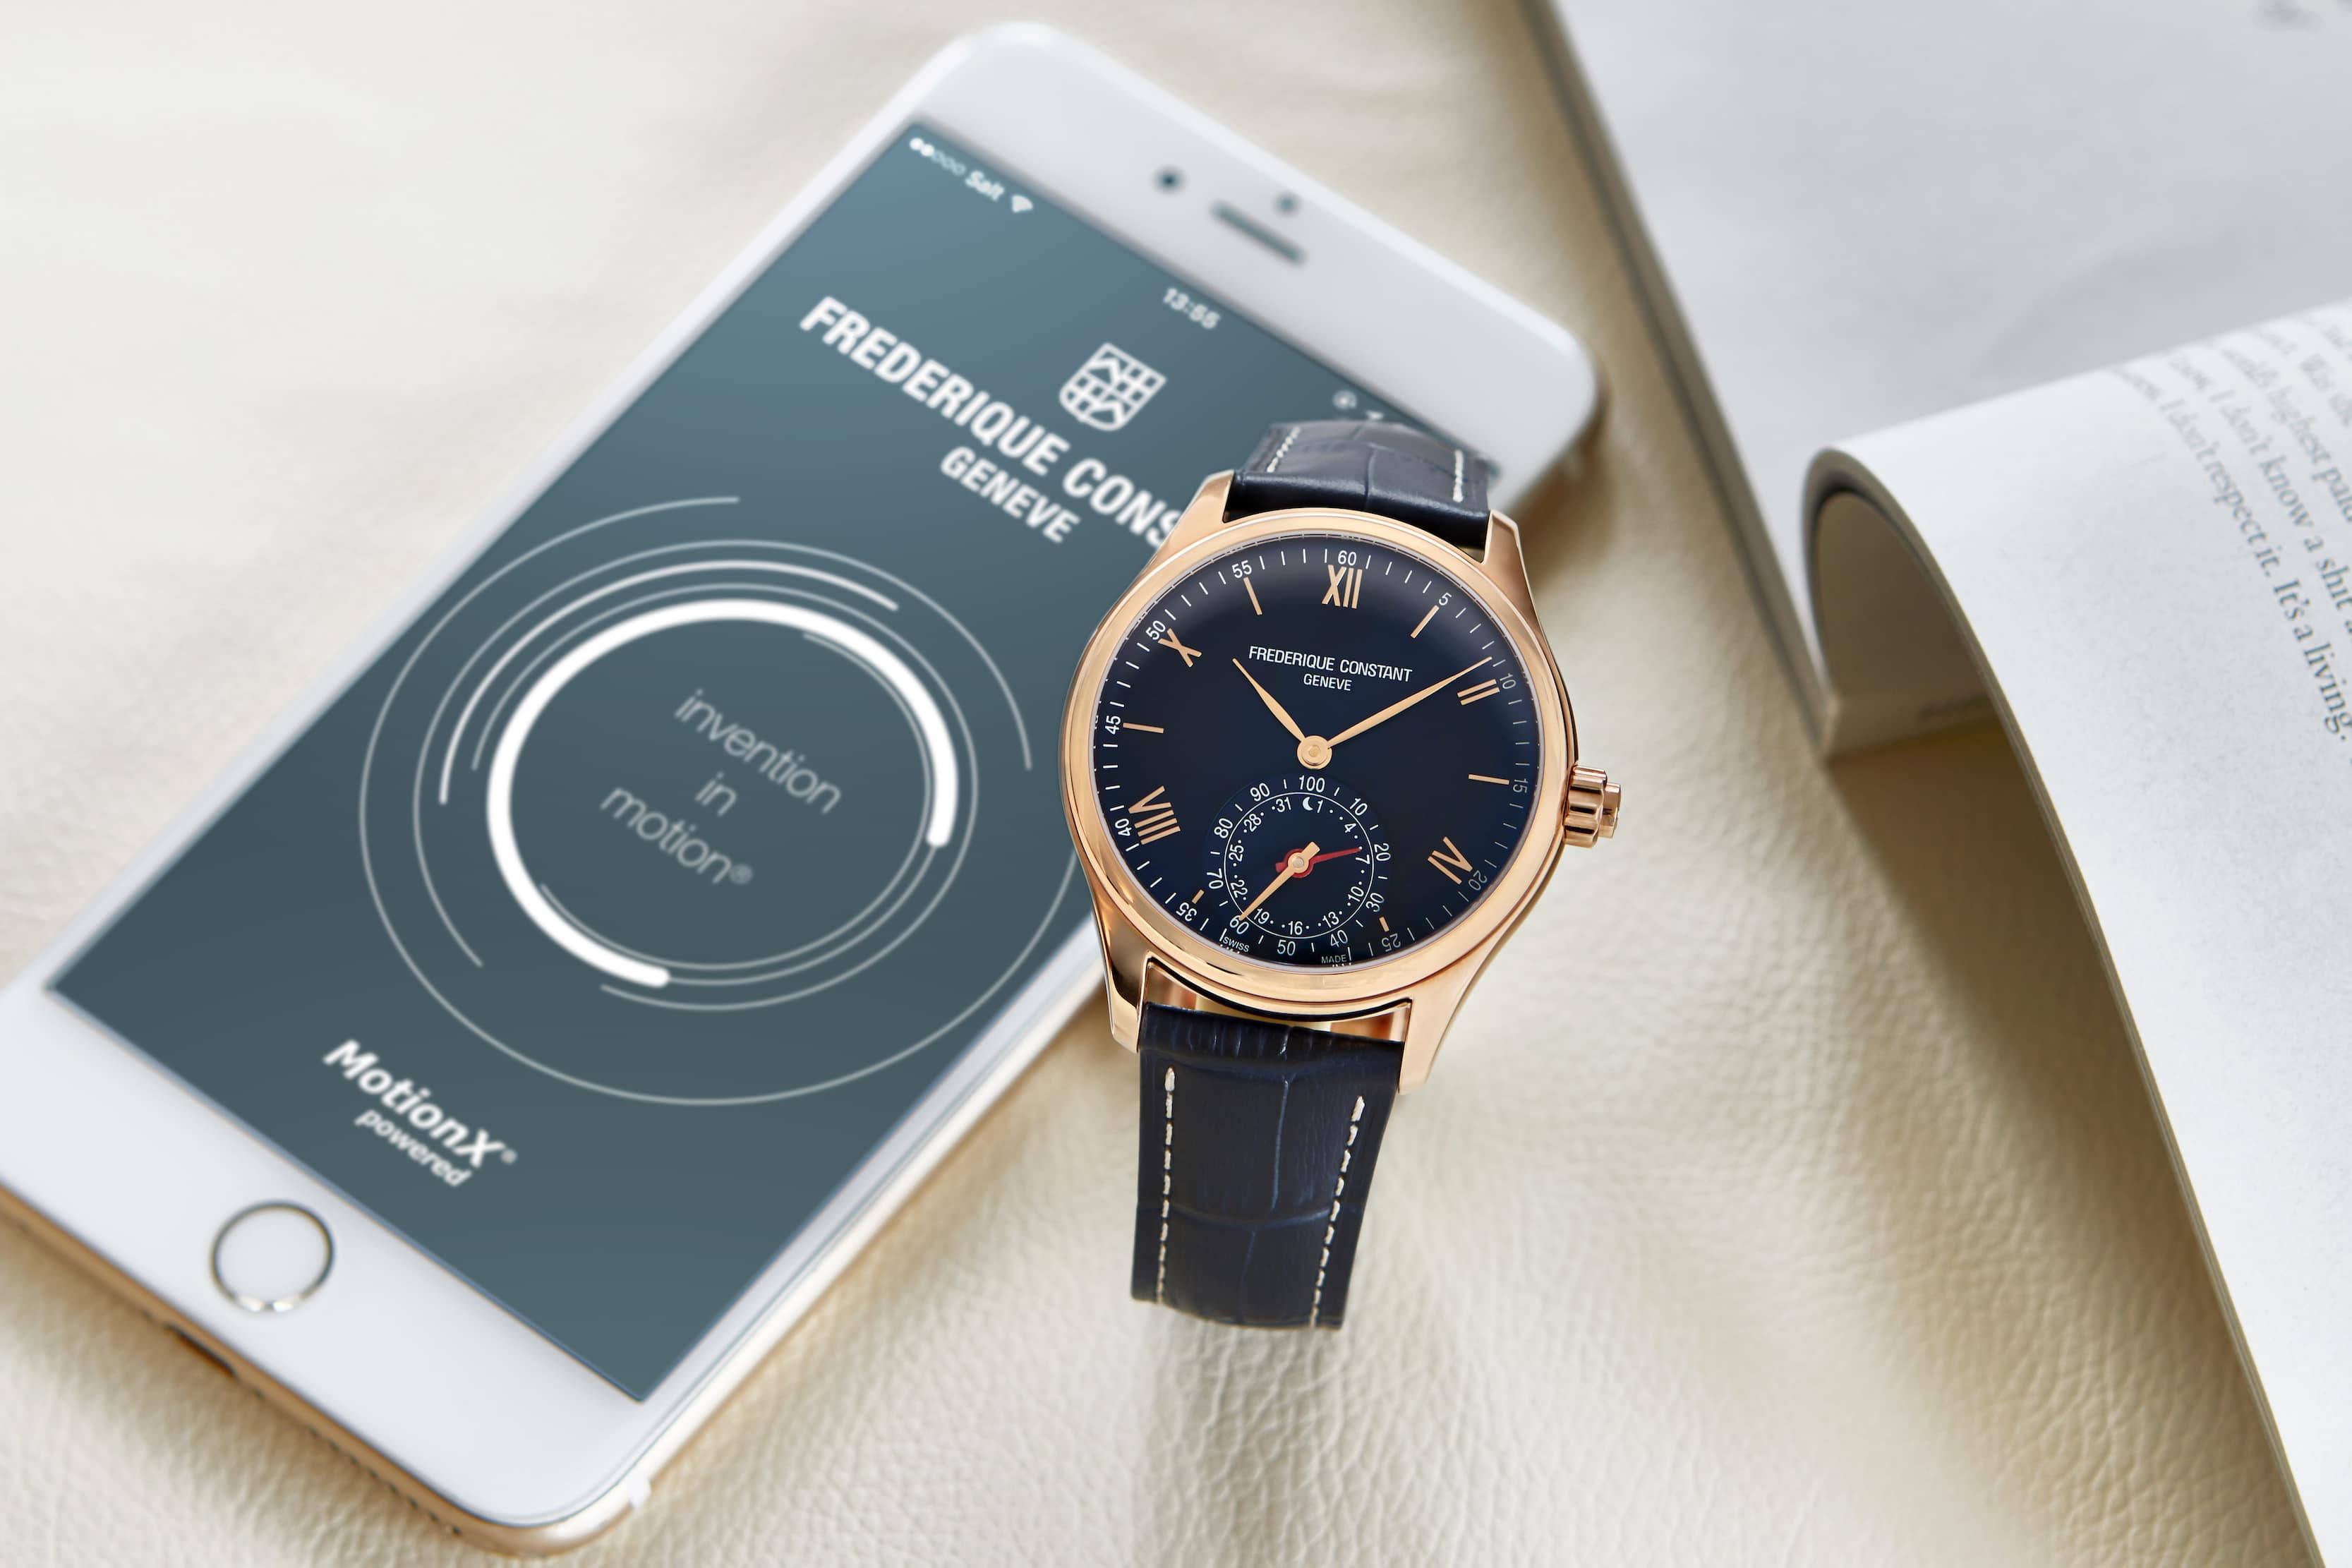 hybrid q and fossil review accomplice app compatibility watches junkies